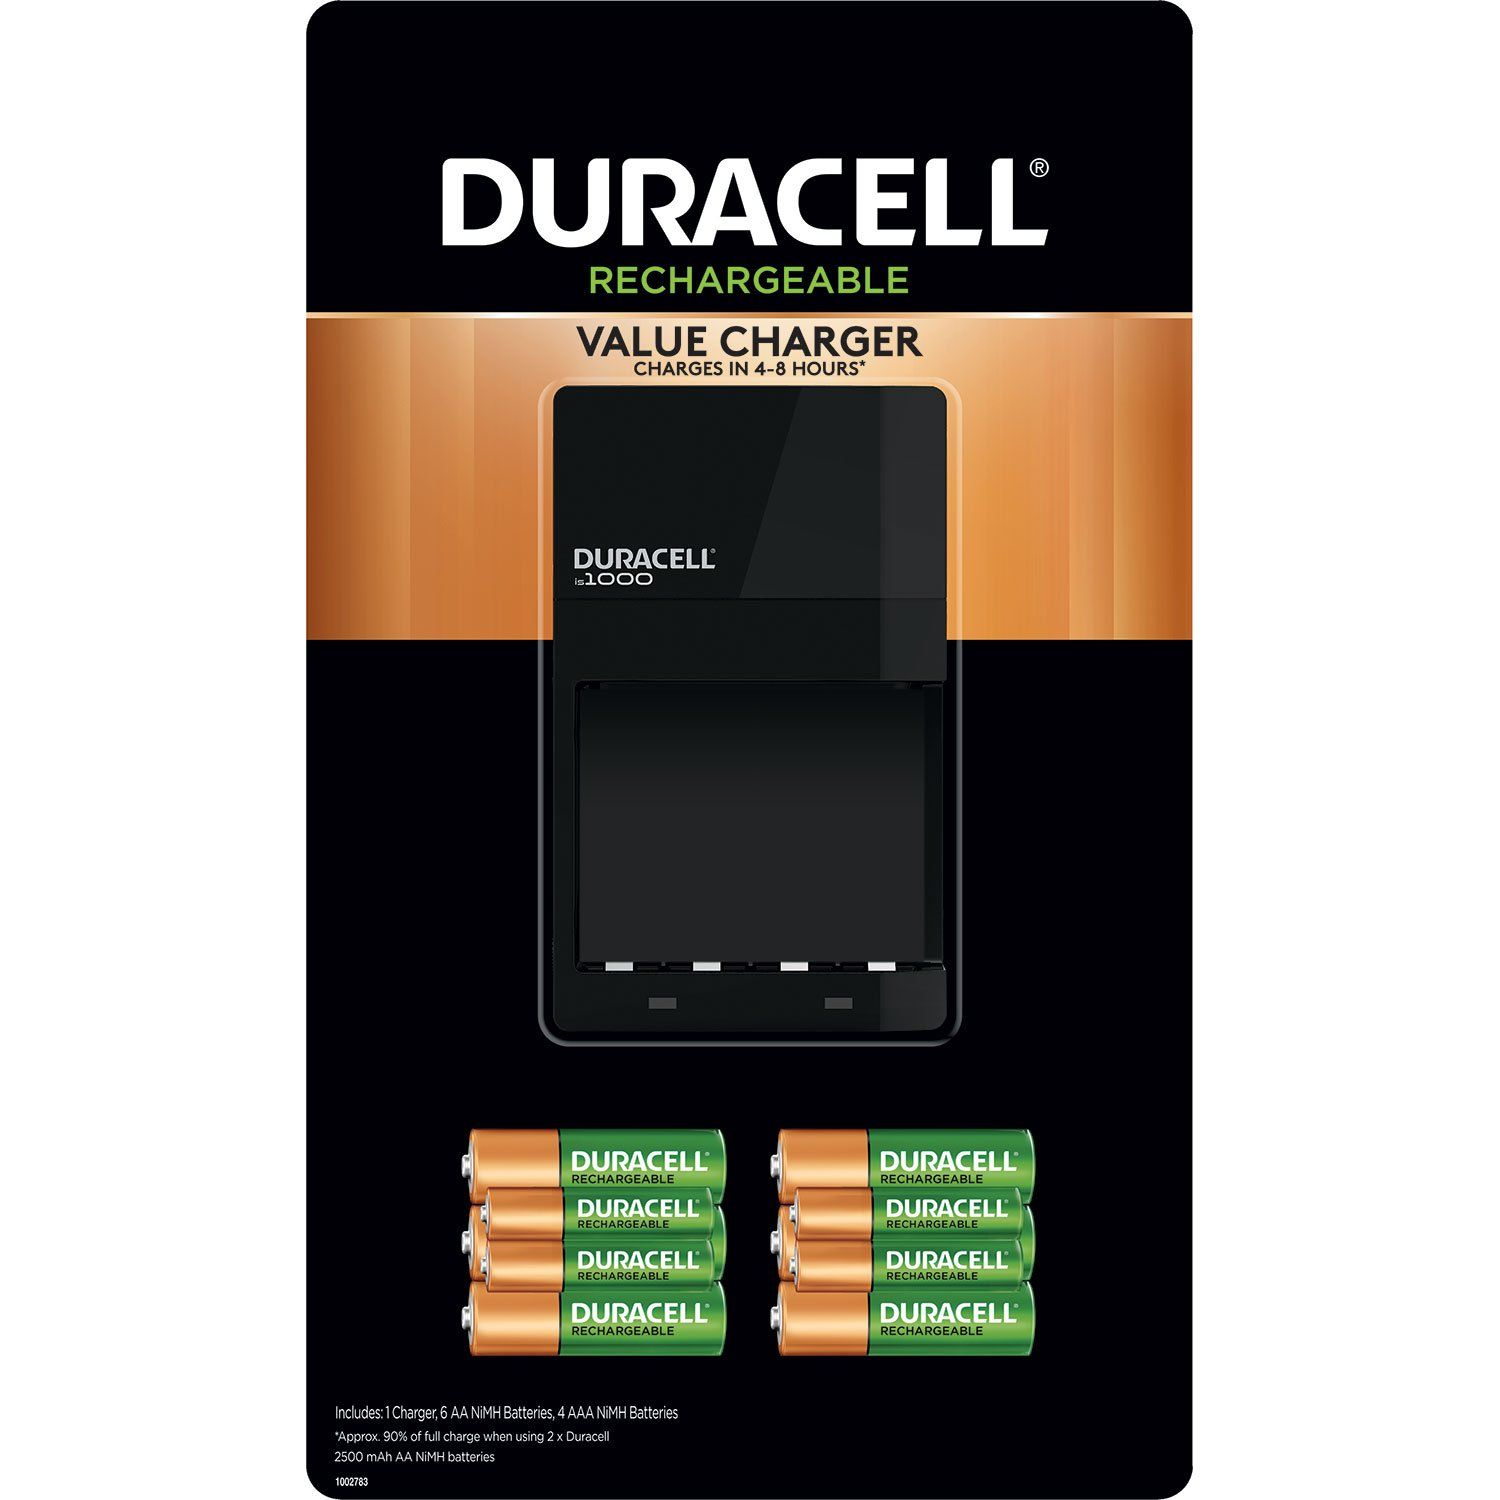 Duracell Battery Charger With Rechargeable Aa 6 Pack And Aaa 4 Pack Walmart Com Duracell Aa Battery Charger Duracell Battery Charger